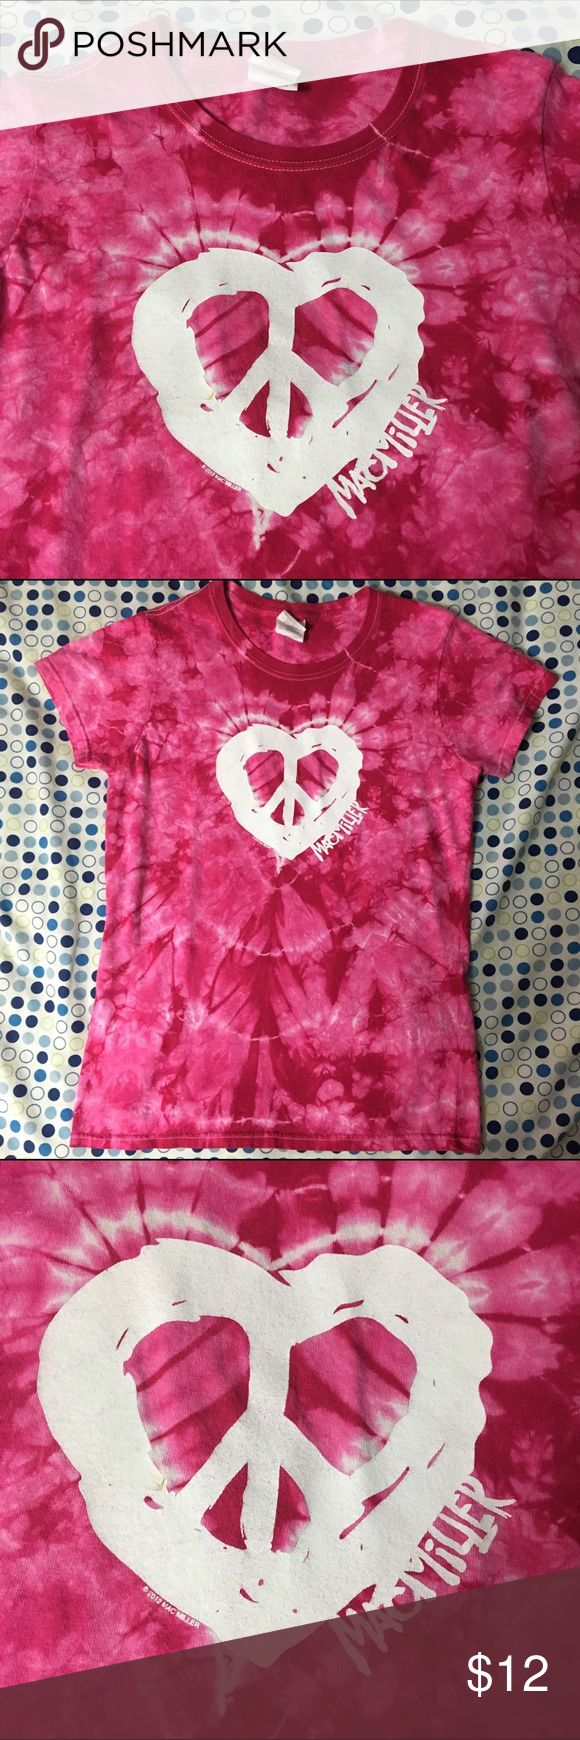 Mac Miller Concert Tee This Mac miller concert tee is in good condition. There is one small brownish stain on the heart that you can see in the third picture. I bought this at a Mac Miller concert in Indy. I love this tee shirt it's just to small for me now. Gildan Tops Tees - Short Sleeve